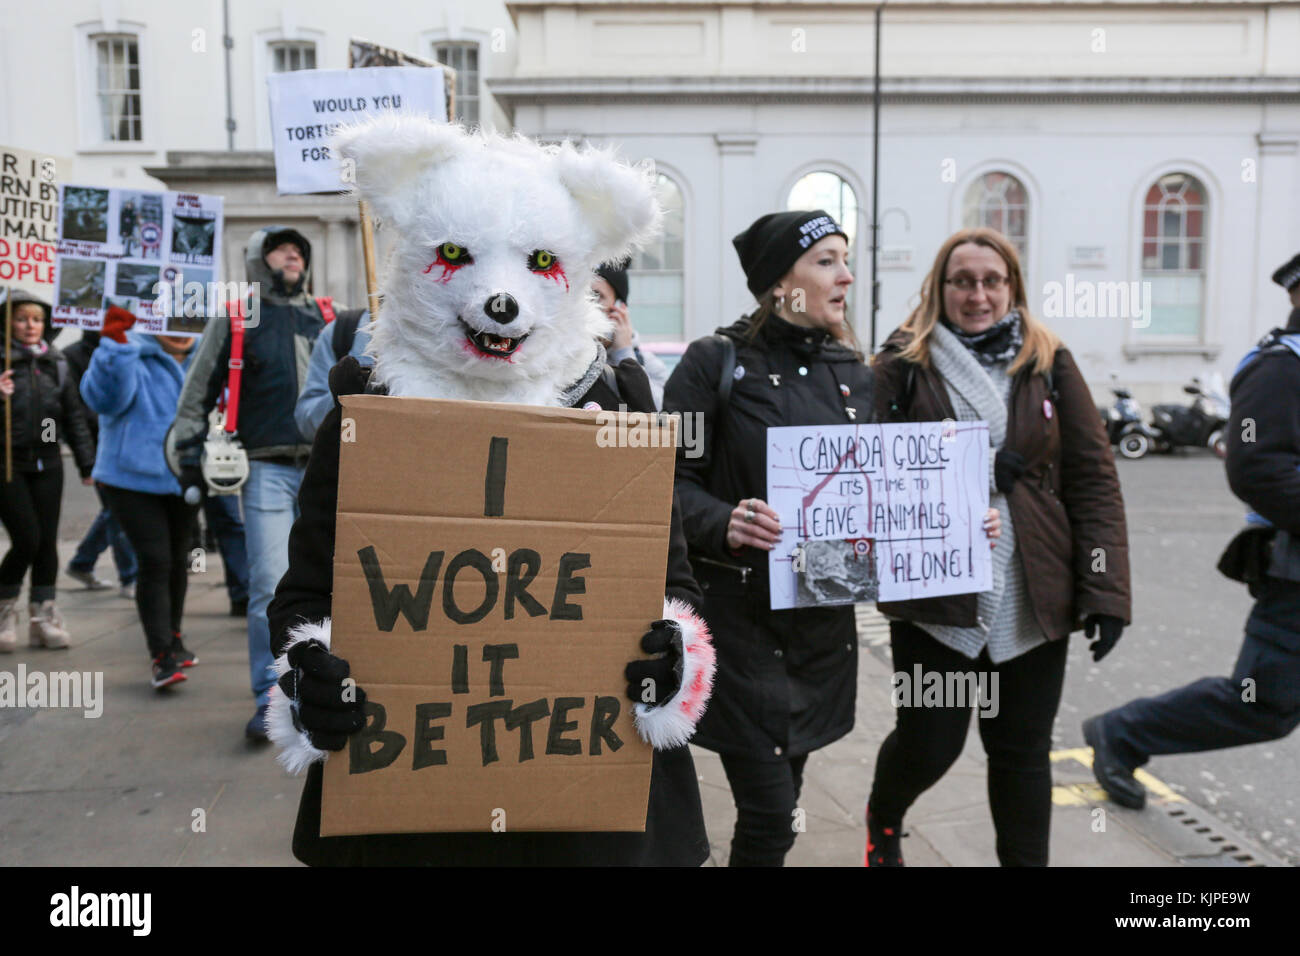 London, UK. 25th November, 2017. Anti fur protesters demonstrate outside , Canada Goose Store in Regents Street. Credit: Penelope Barritt/Alamy Live News